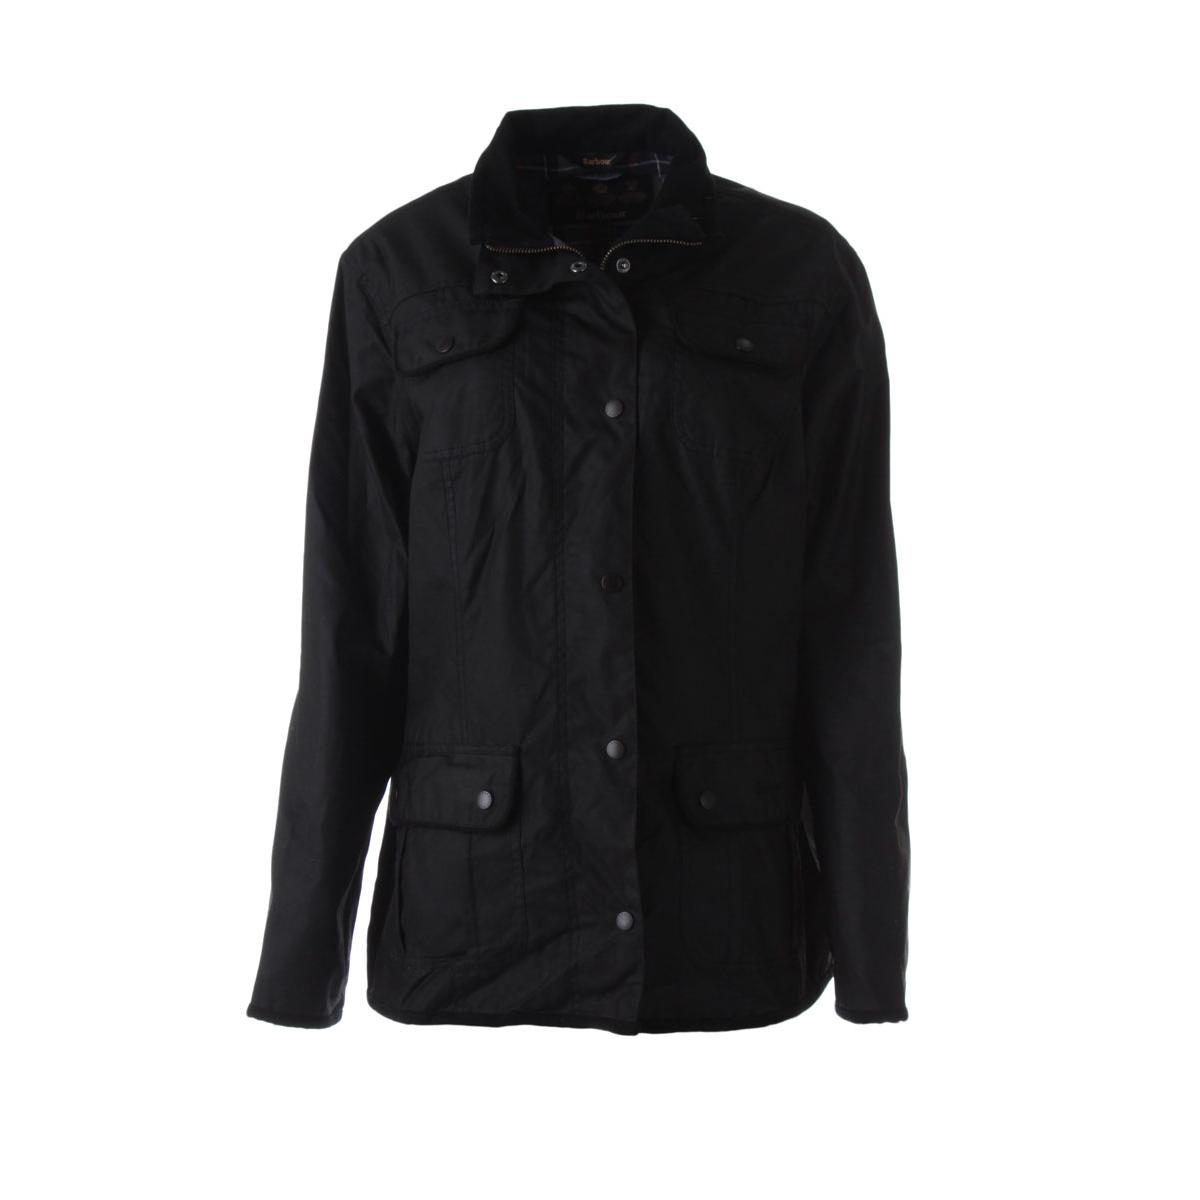 Barbour Womens Waxed Cotton Utility Jacket